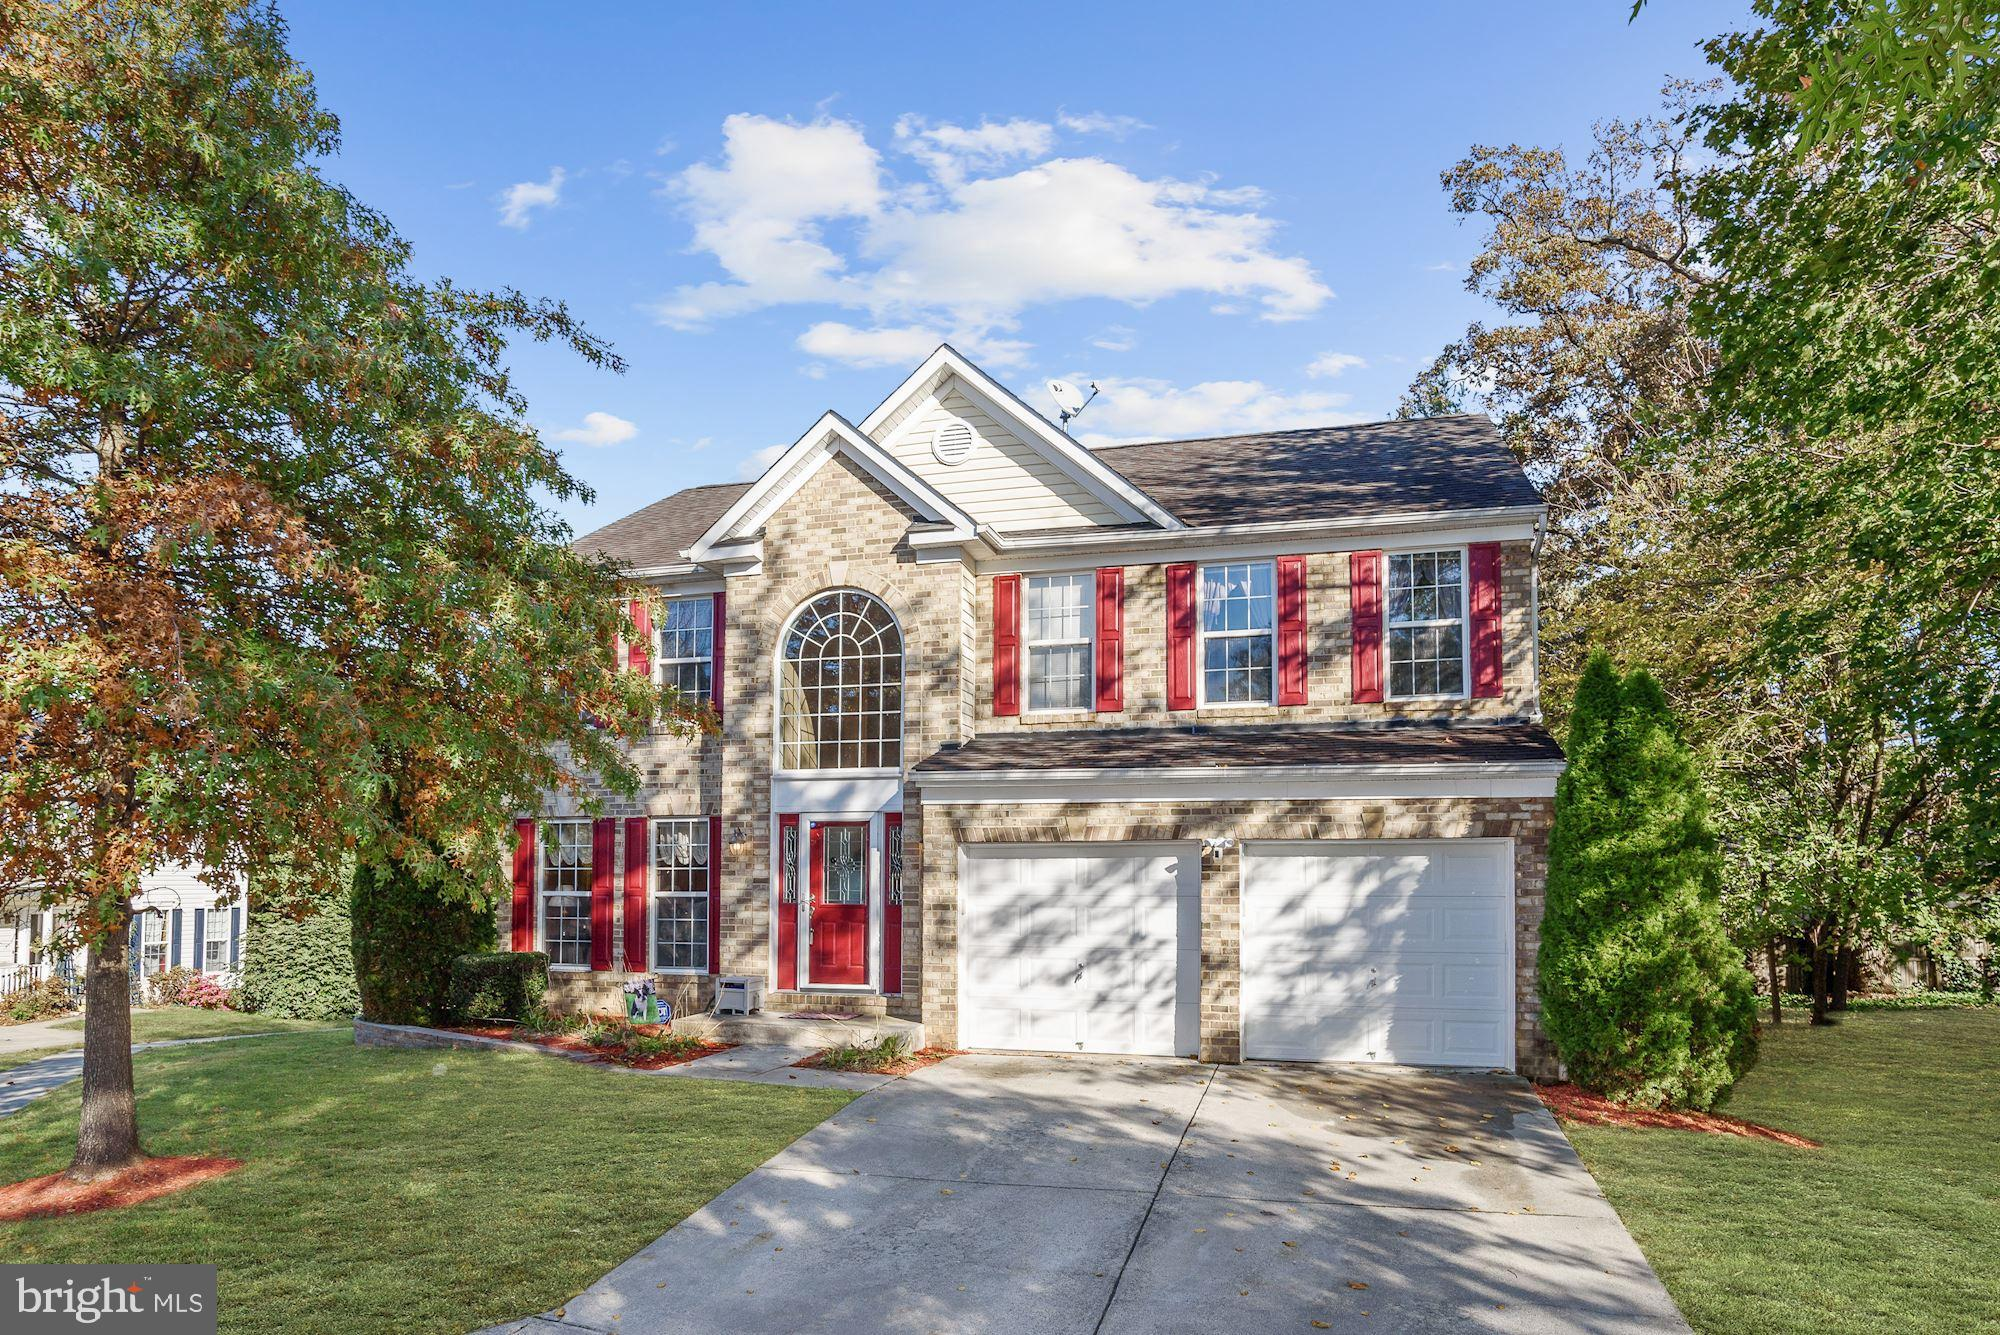 315 JERLYN AVENUE, LINTHICUM HEIGHTS, MD 21090